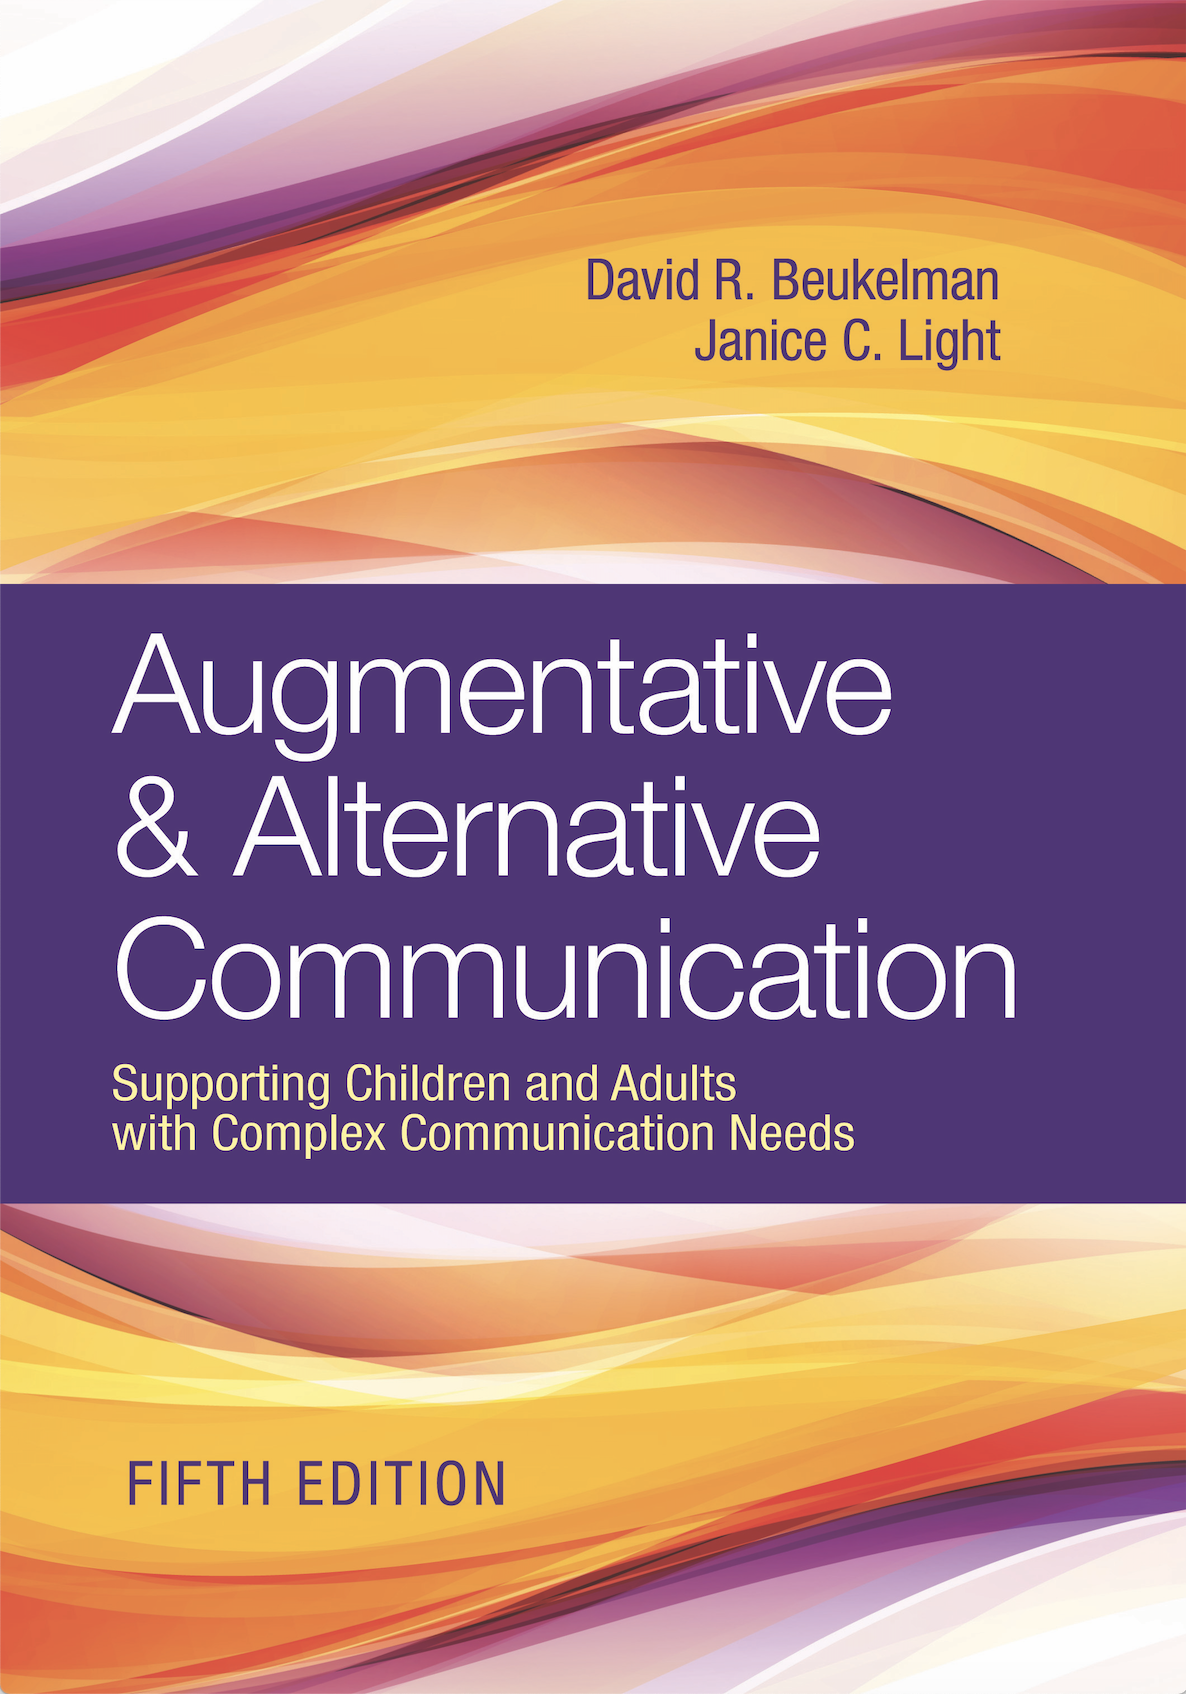 Augmentative and Alternative Communication: Supporting Children and Adults with Complex Communication Needs, 5th Edition